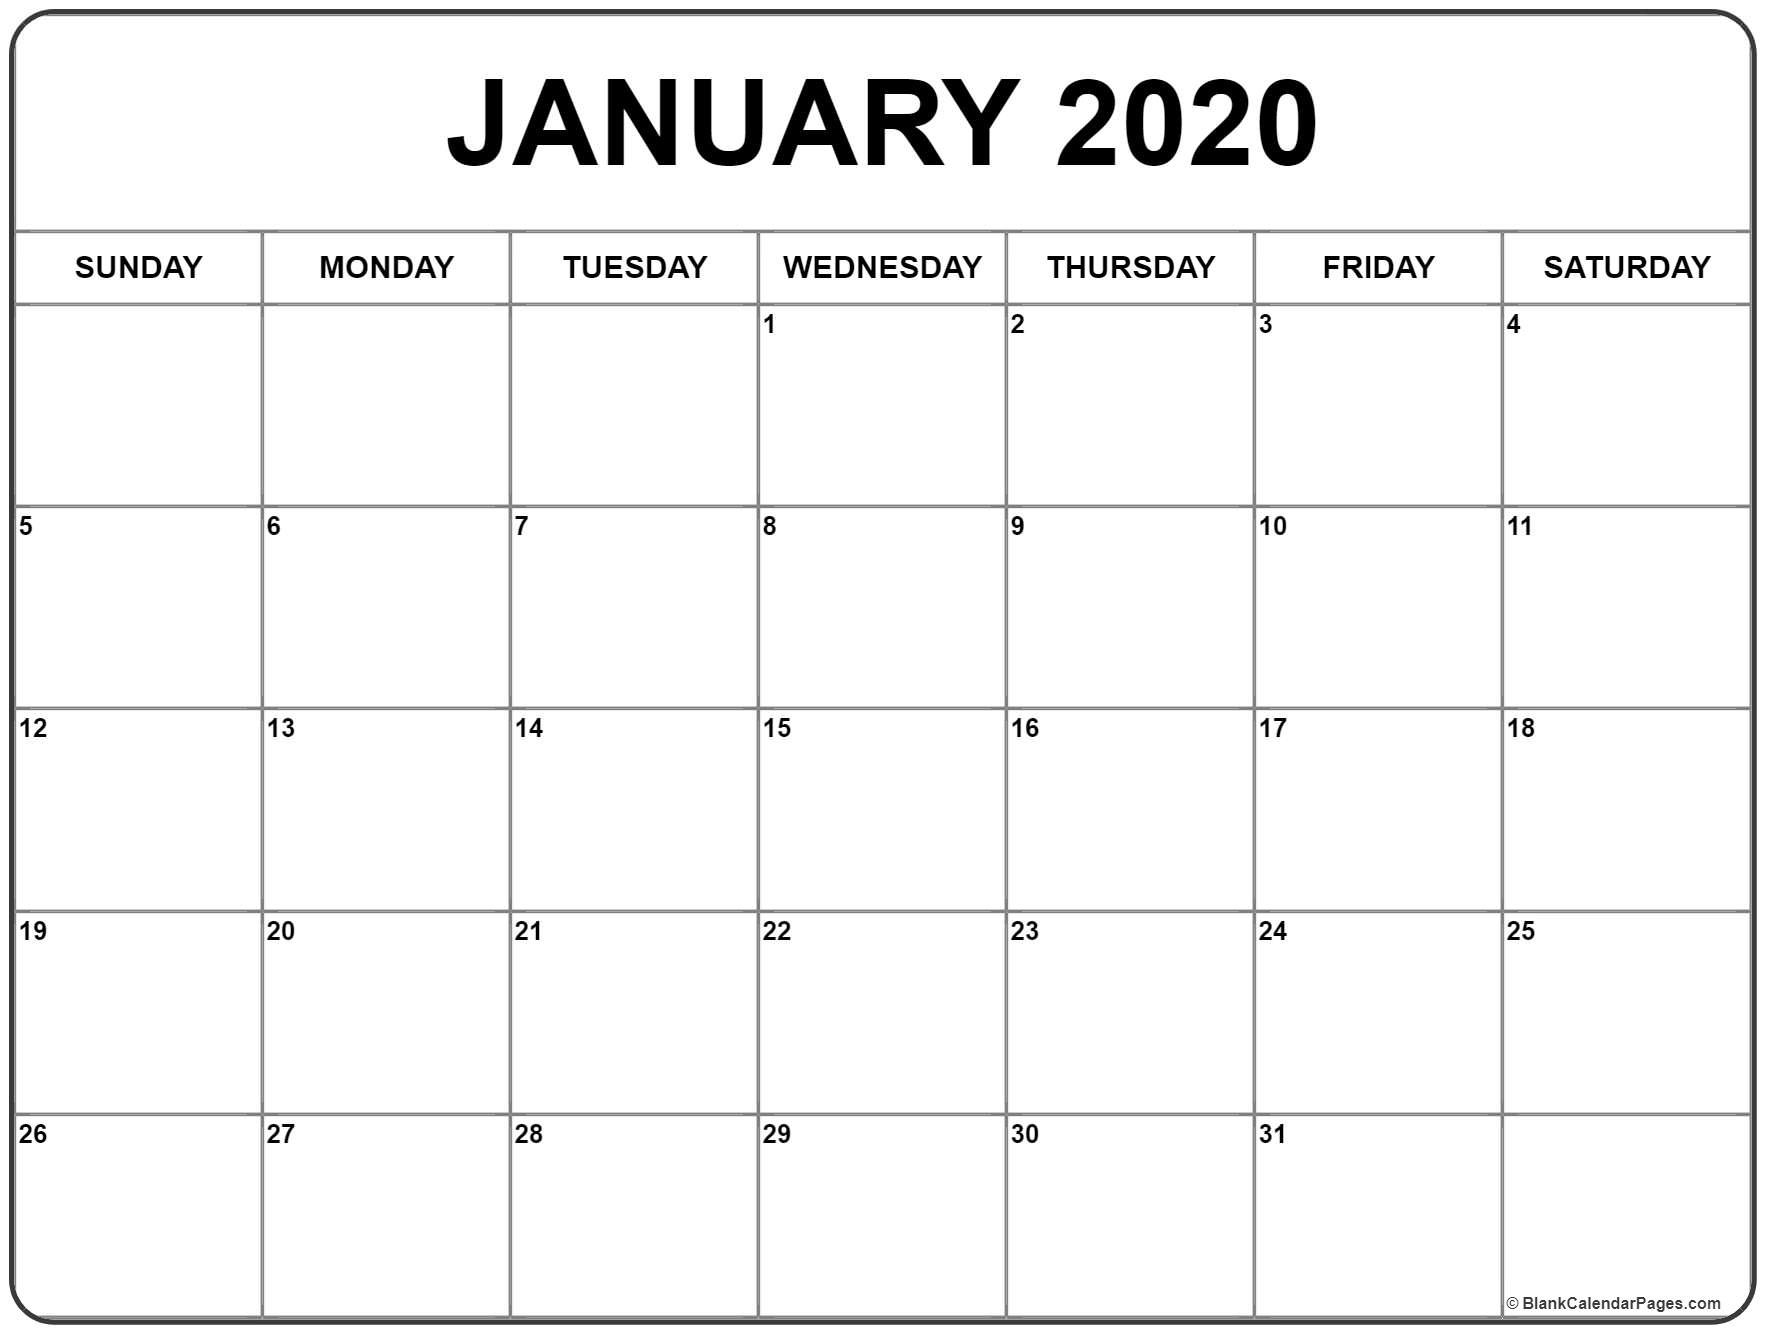 January 2020 Calendar | Free Printable Monthly Calendars In January regarding Free Printable 2020 Waterproof Calendars